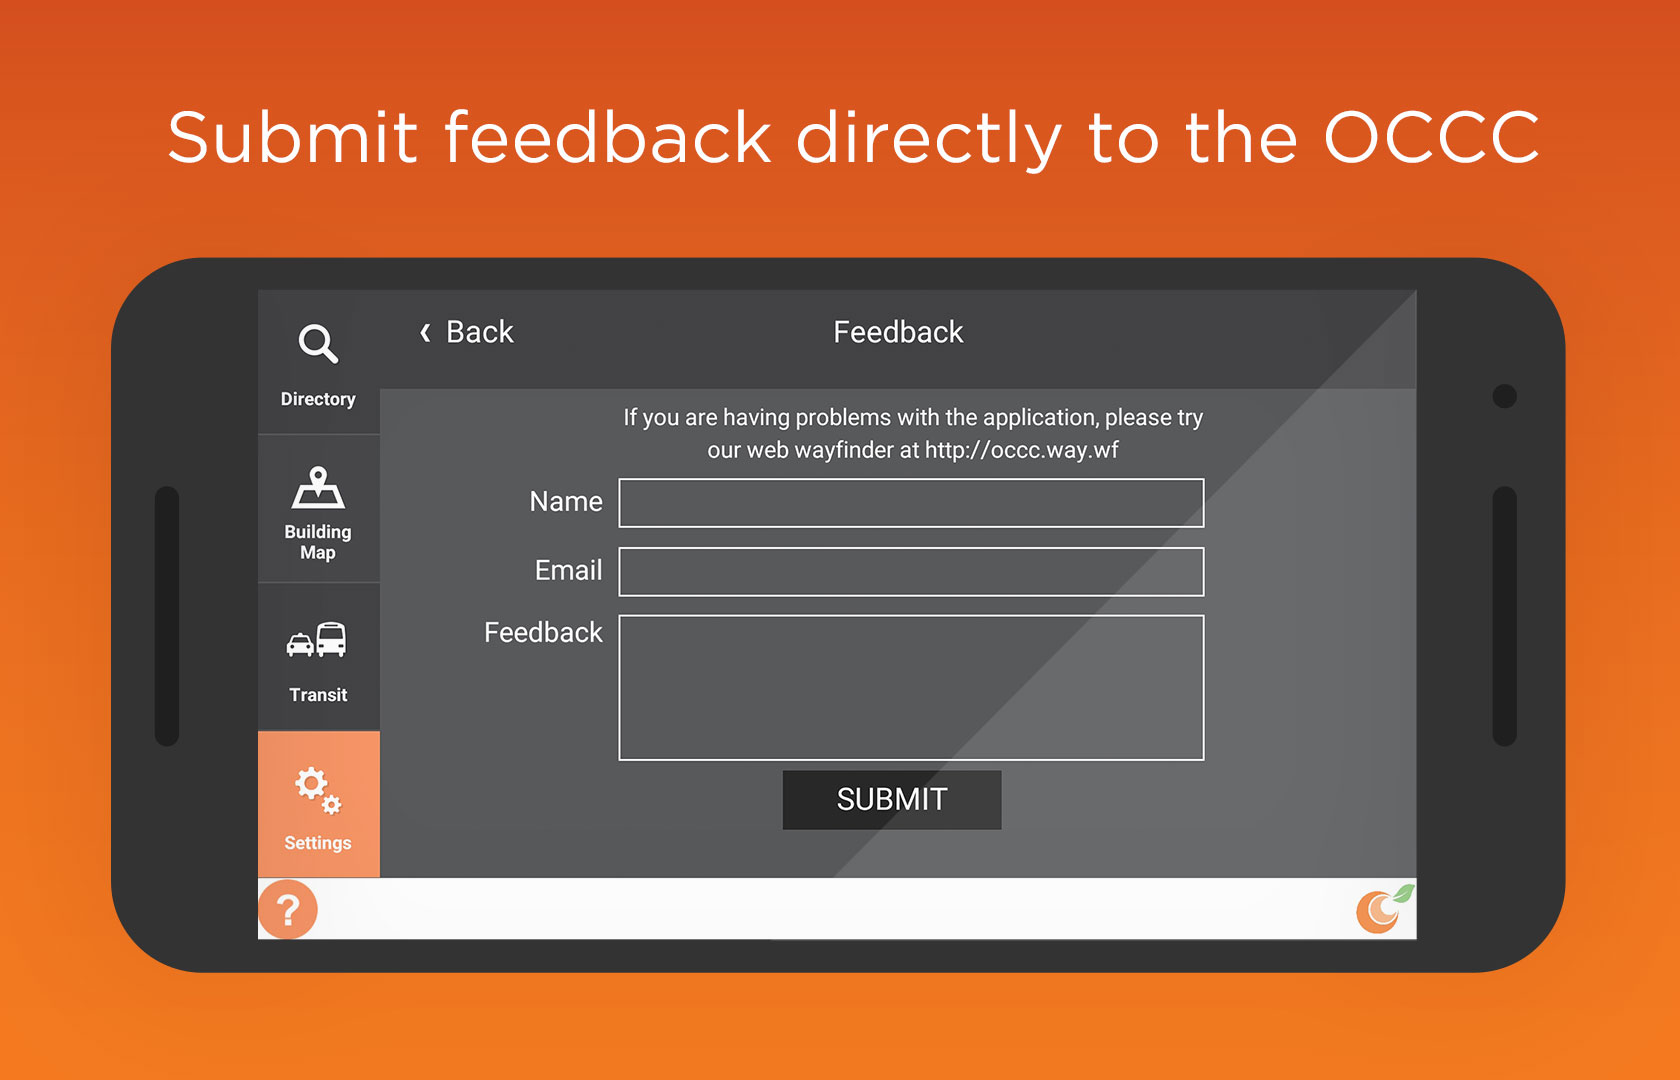 Submit feedback directly to the OCCC